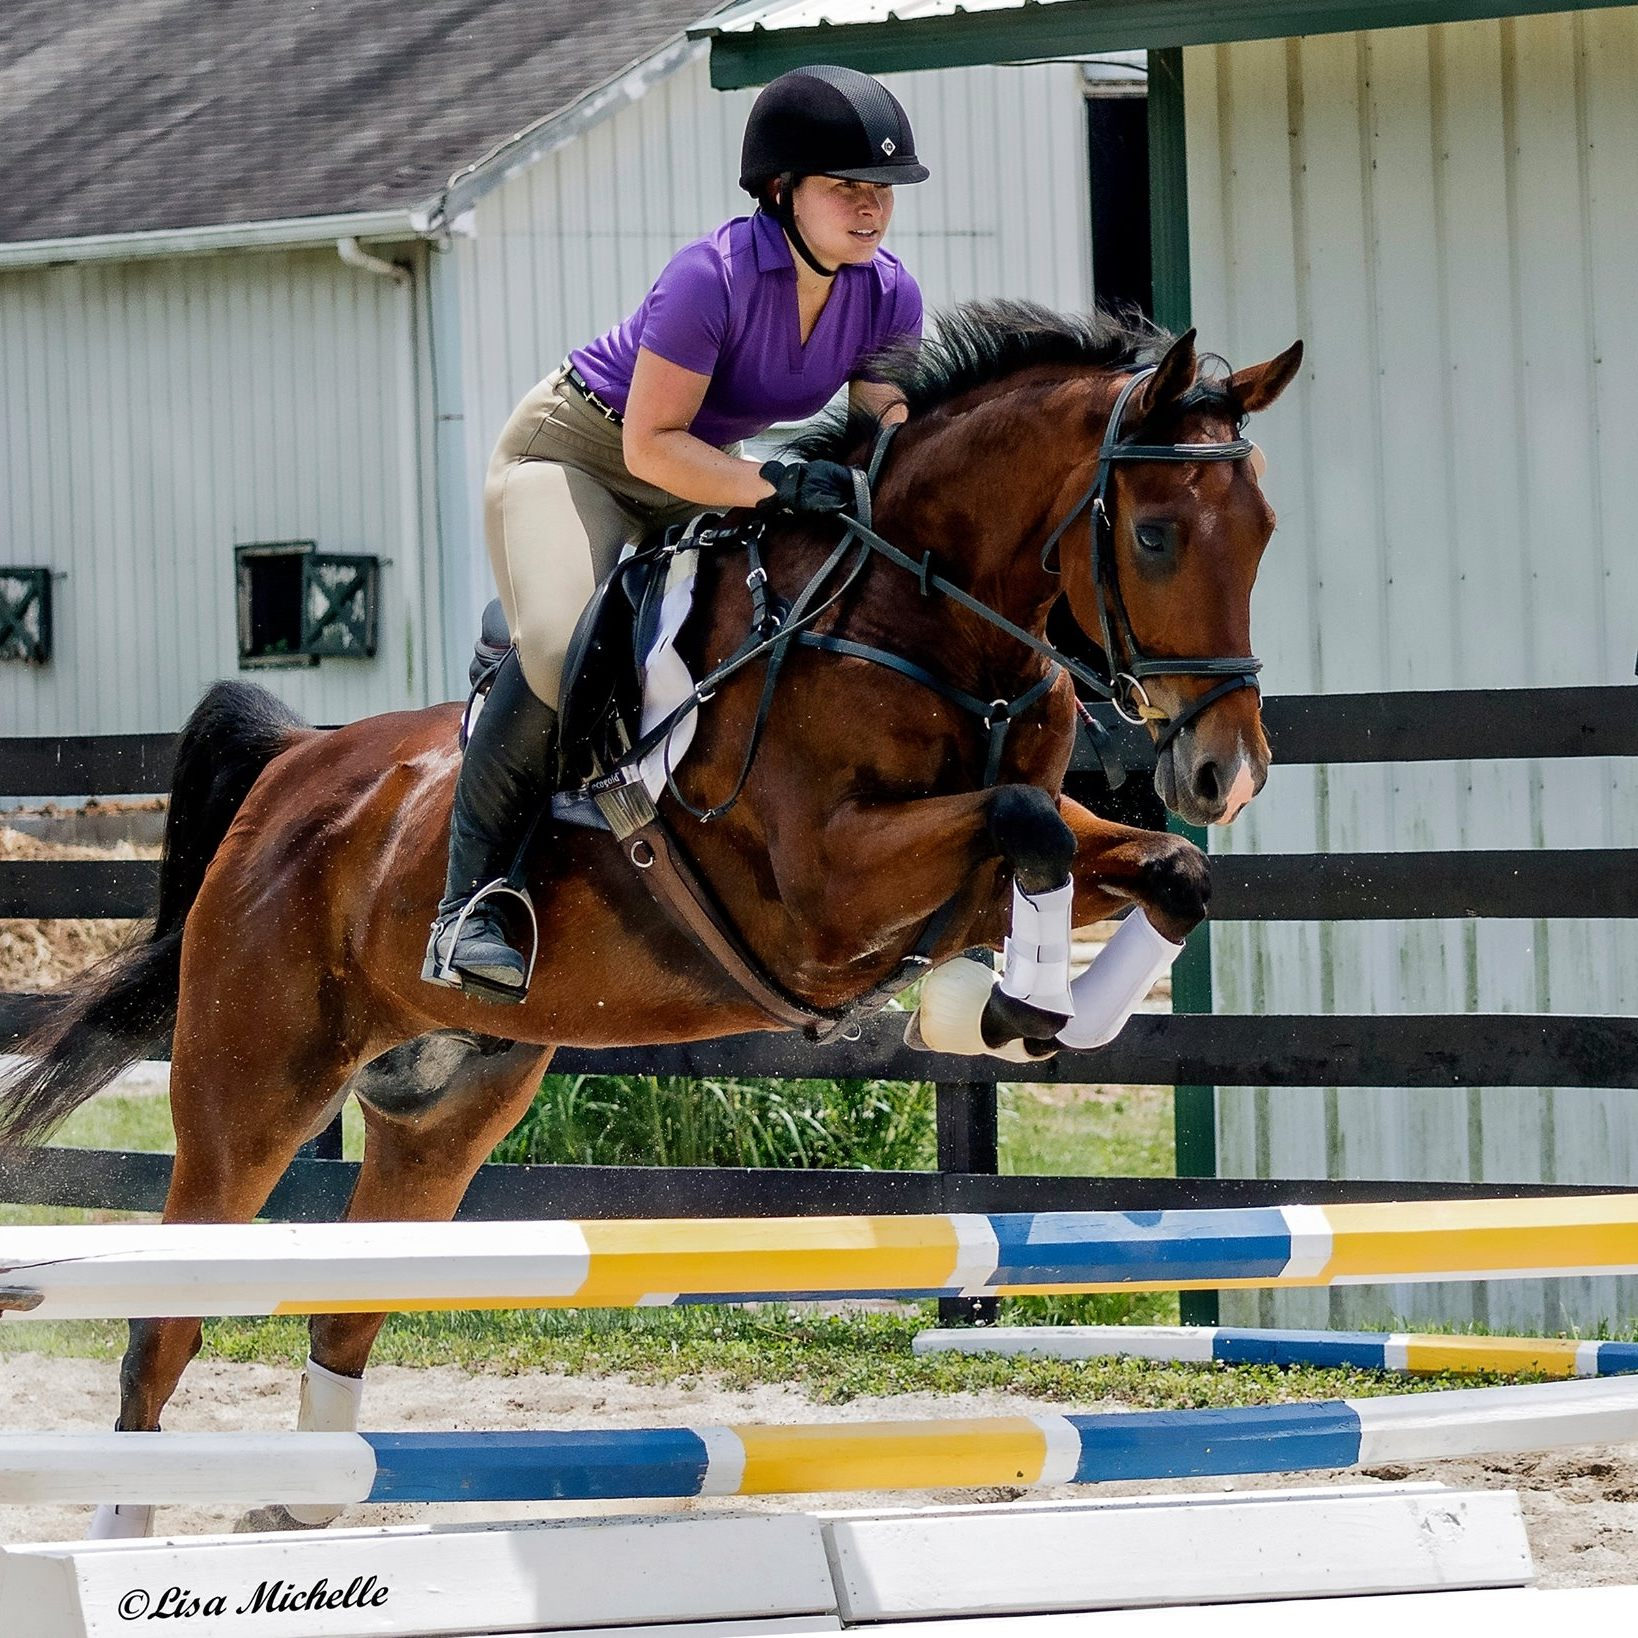 Rachel Kelley and her beloved Saddlebred, George, competing in eventing.